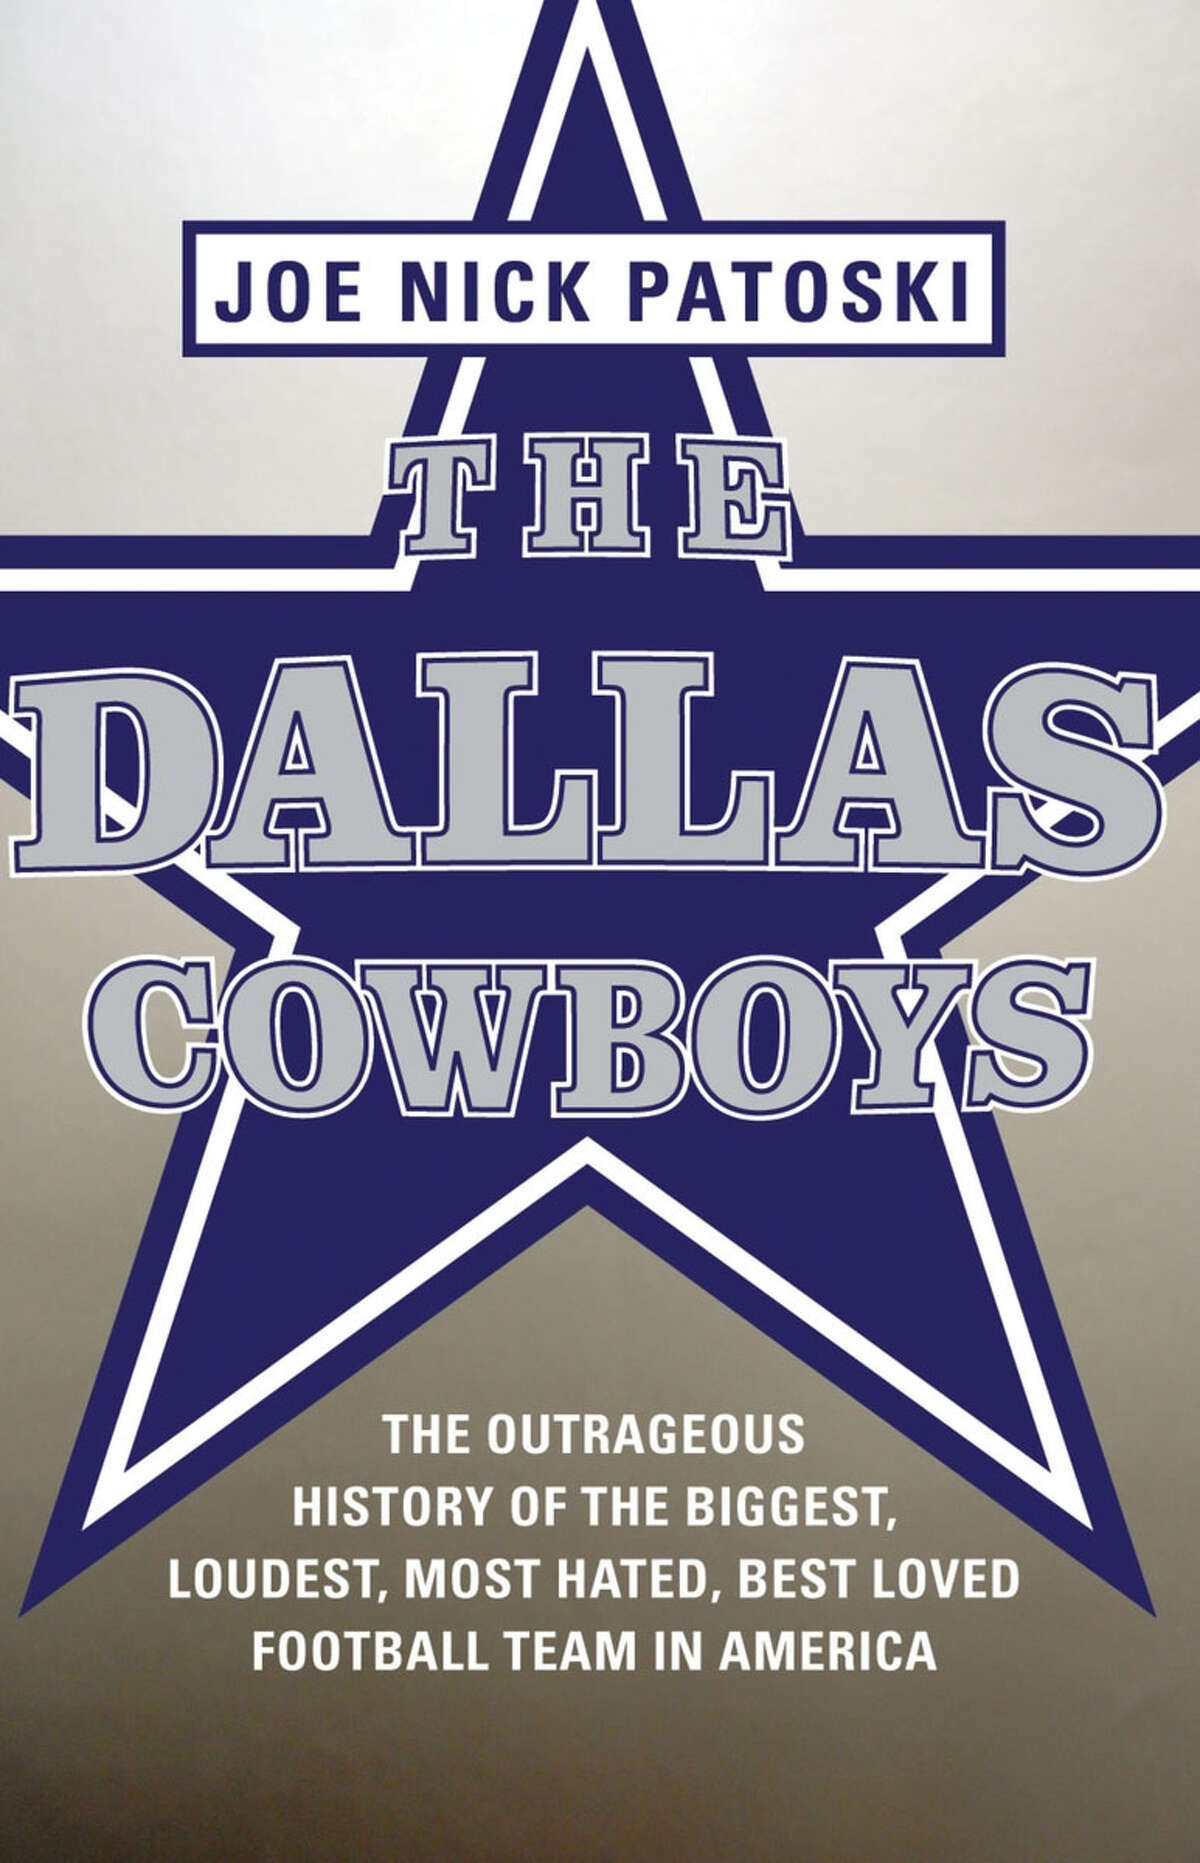 """Joe Nick Patoski talks about his new book on the Dallas Cowboys franchise from its inception to the Jerry Jones era, """"The Dallas Cowboys: The Outrageous History of the Biggest, Loudest, Most Hated, Best Loved Football Team in America."""""""